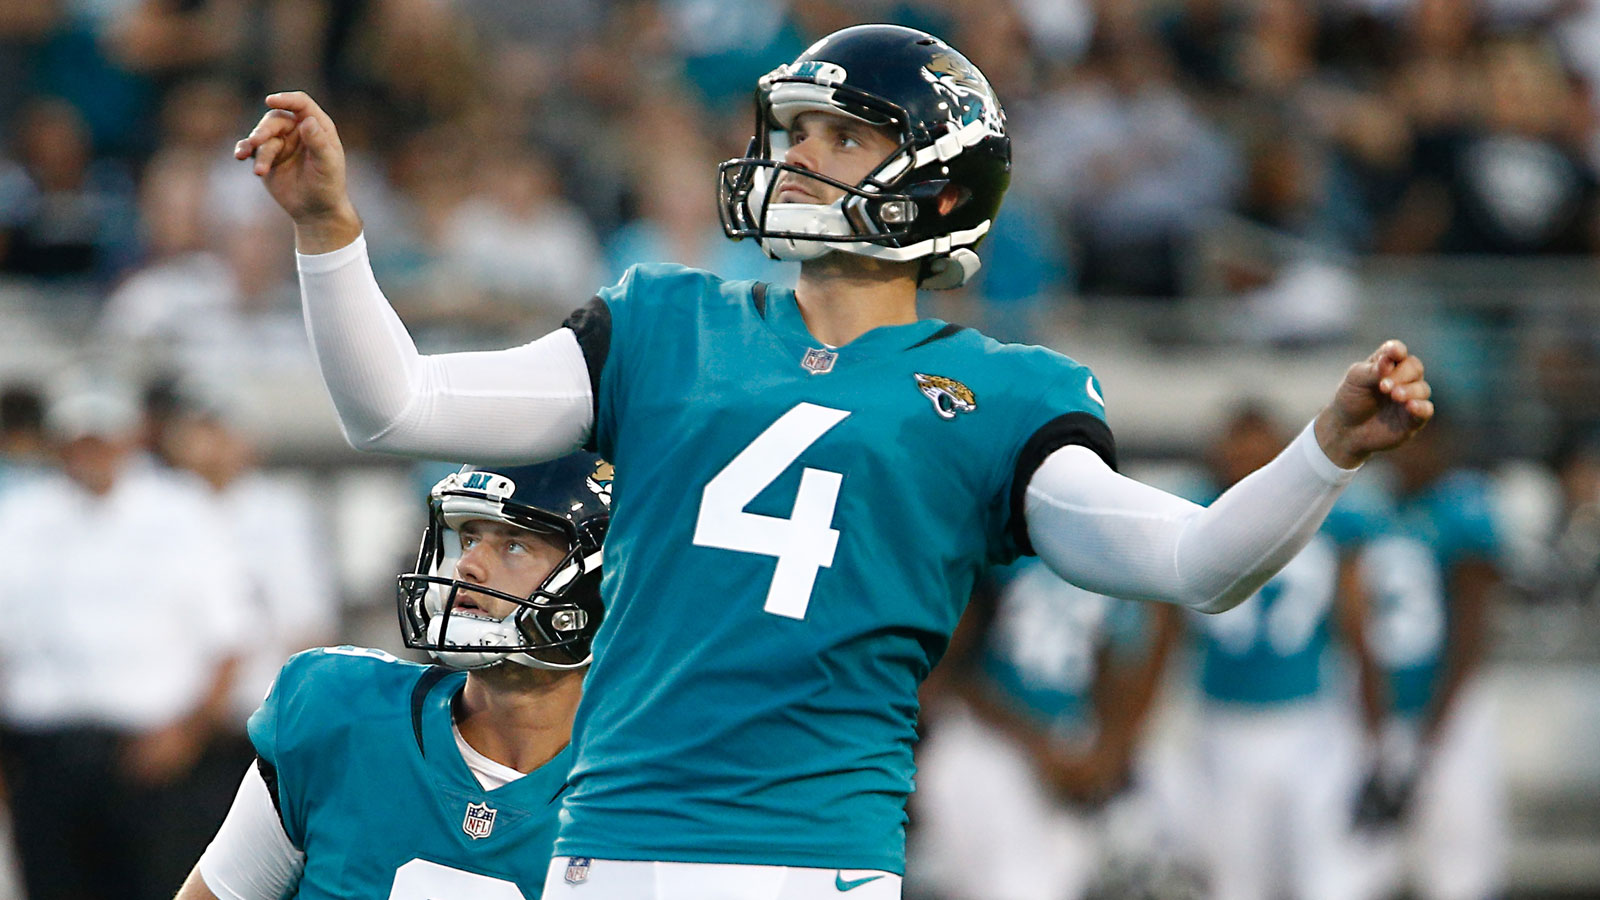 Jaguars sign kicker Josh Lambo to 4-year contract extension